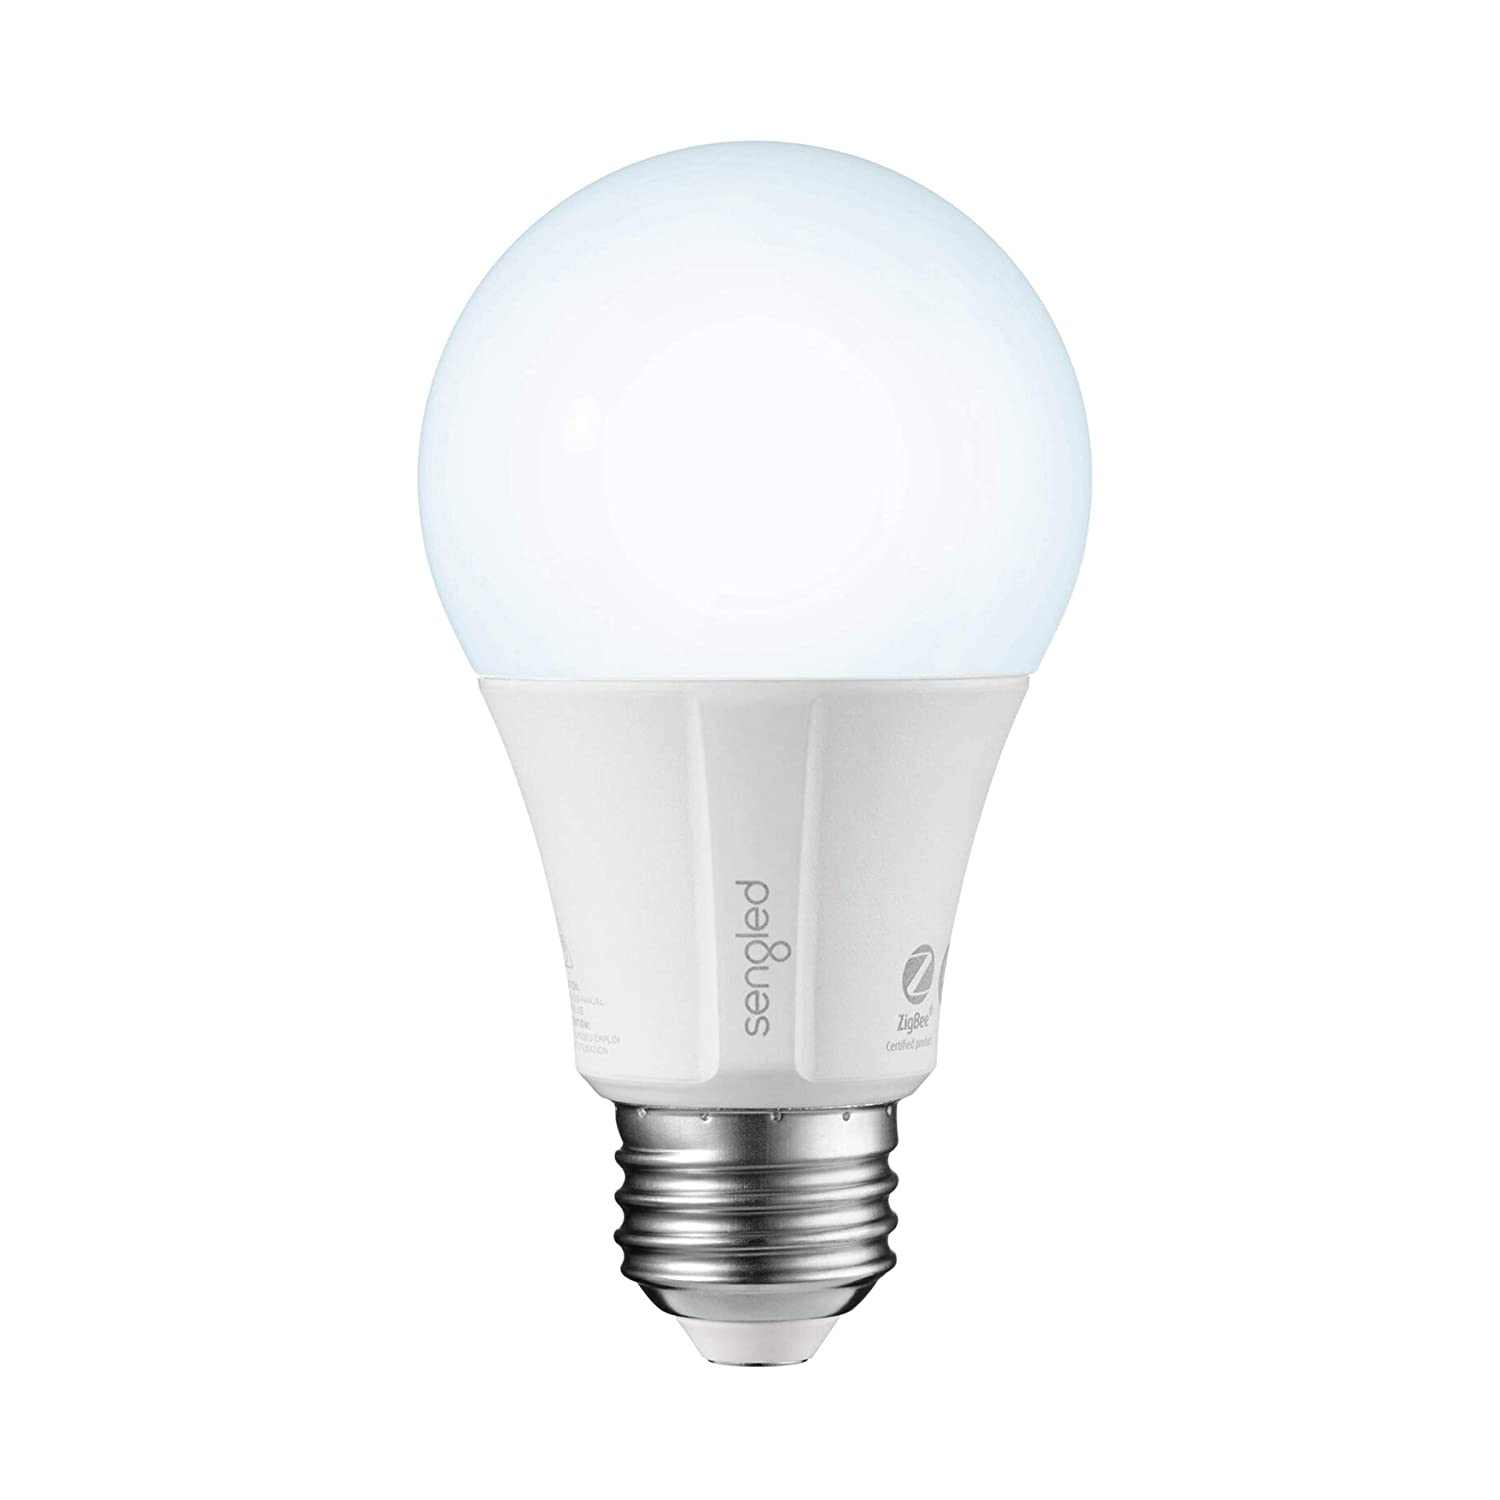 Sengled Smart LED Daylight A19 Bulb, Hub Required, 5000K 60W Equivalent, Works with Alexa, Google Assistant & SmartThings, 1 Pack